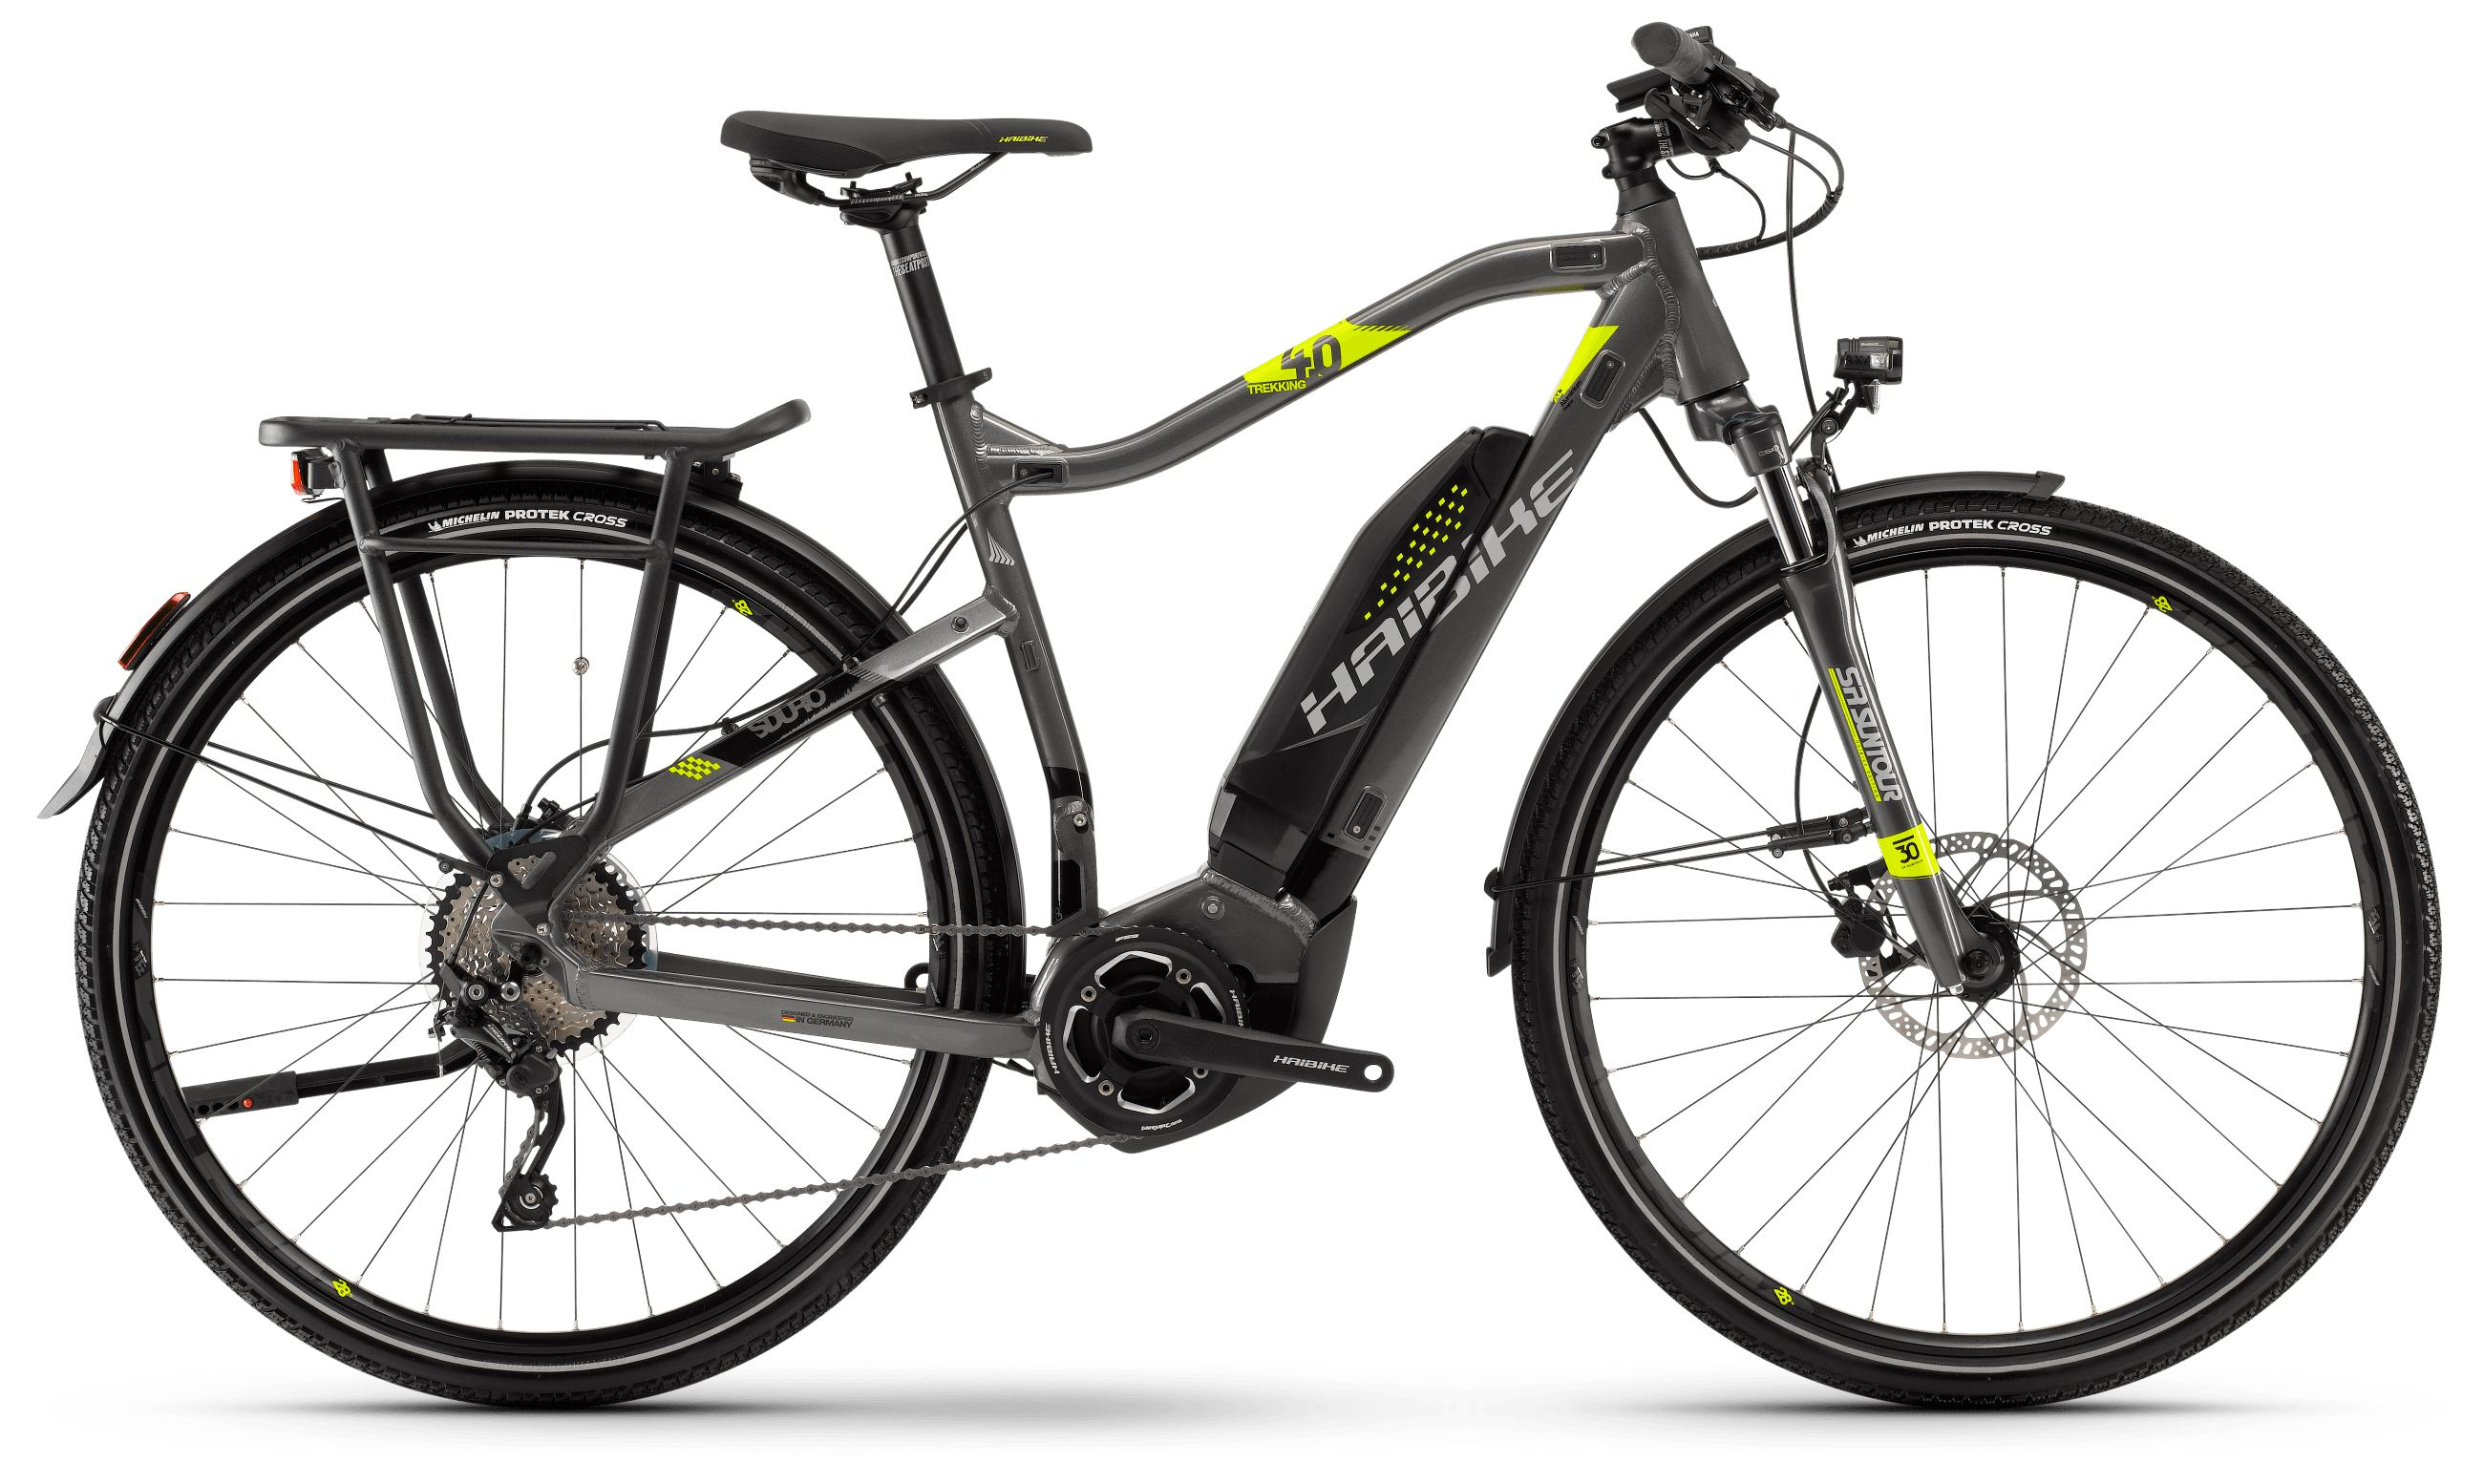 Электровелосипед Haibike Sduro Trekking 4.0 He 400Wh 10s Deore 2018